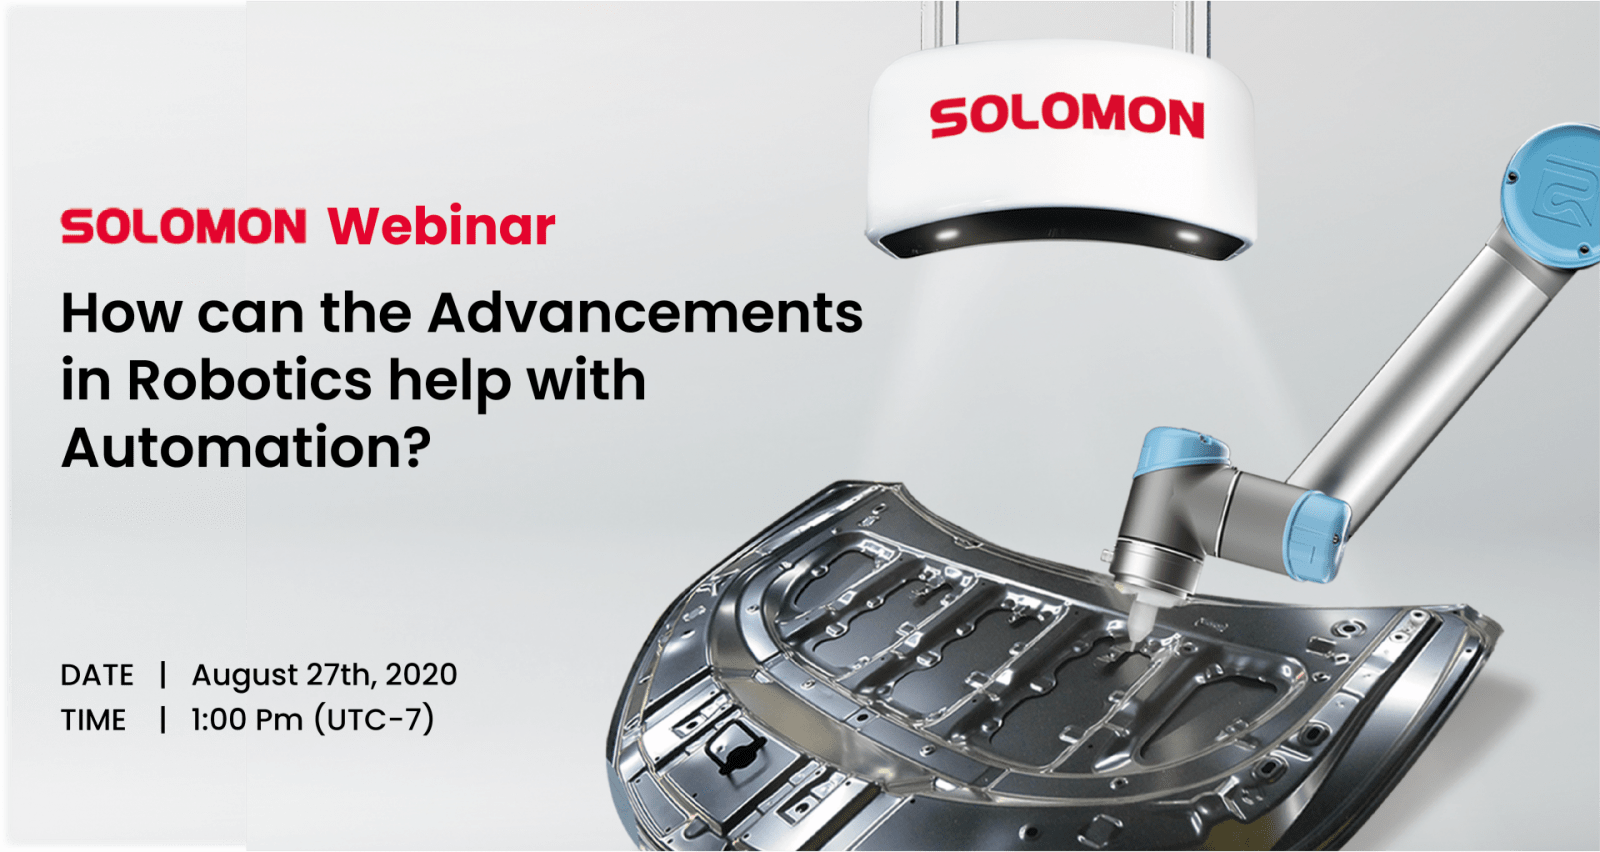 How can the Advancements in Robotics help with Automation? Introducing AI 3D Vision Solution – Solmotion (Vision Guided Robot – VGR )